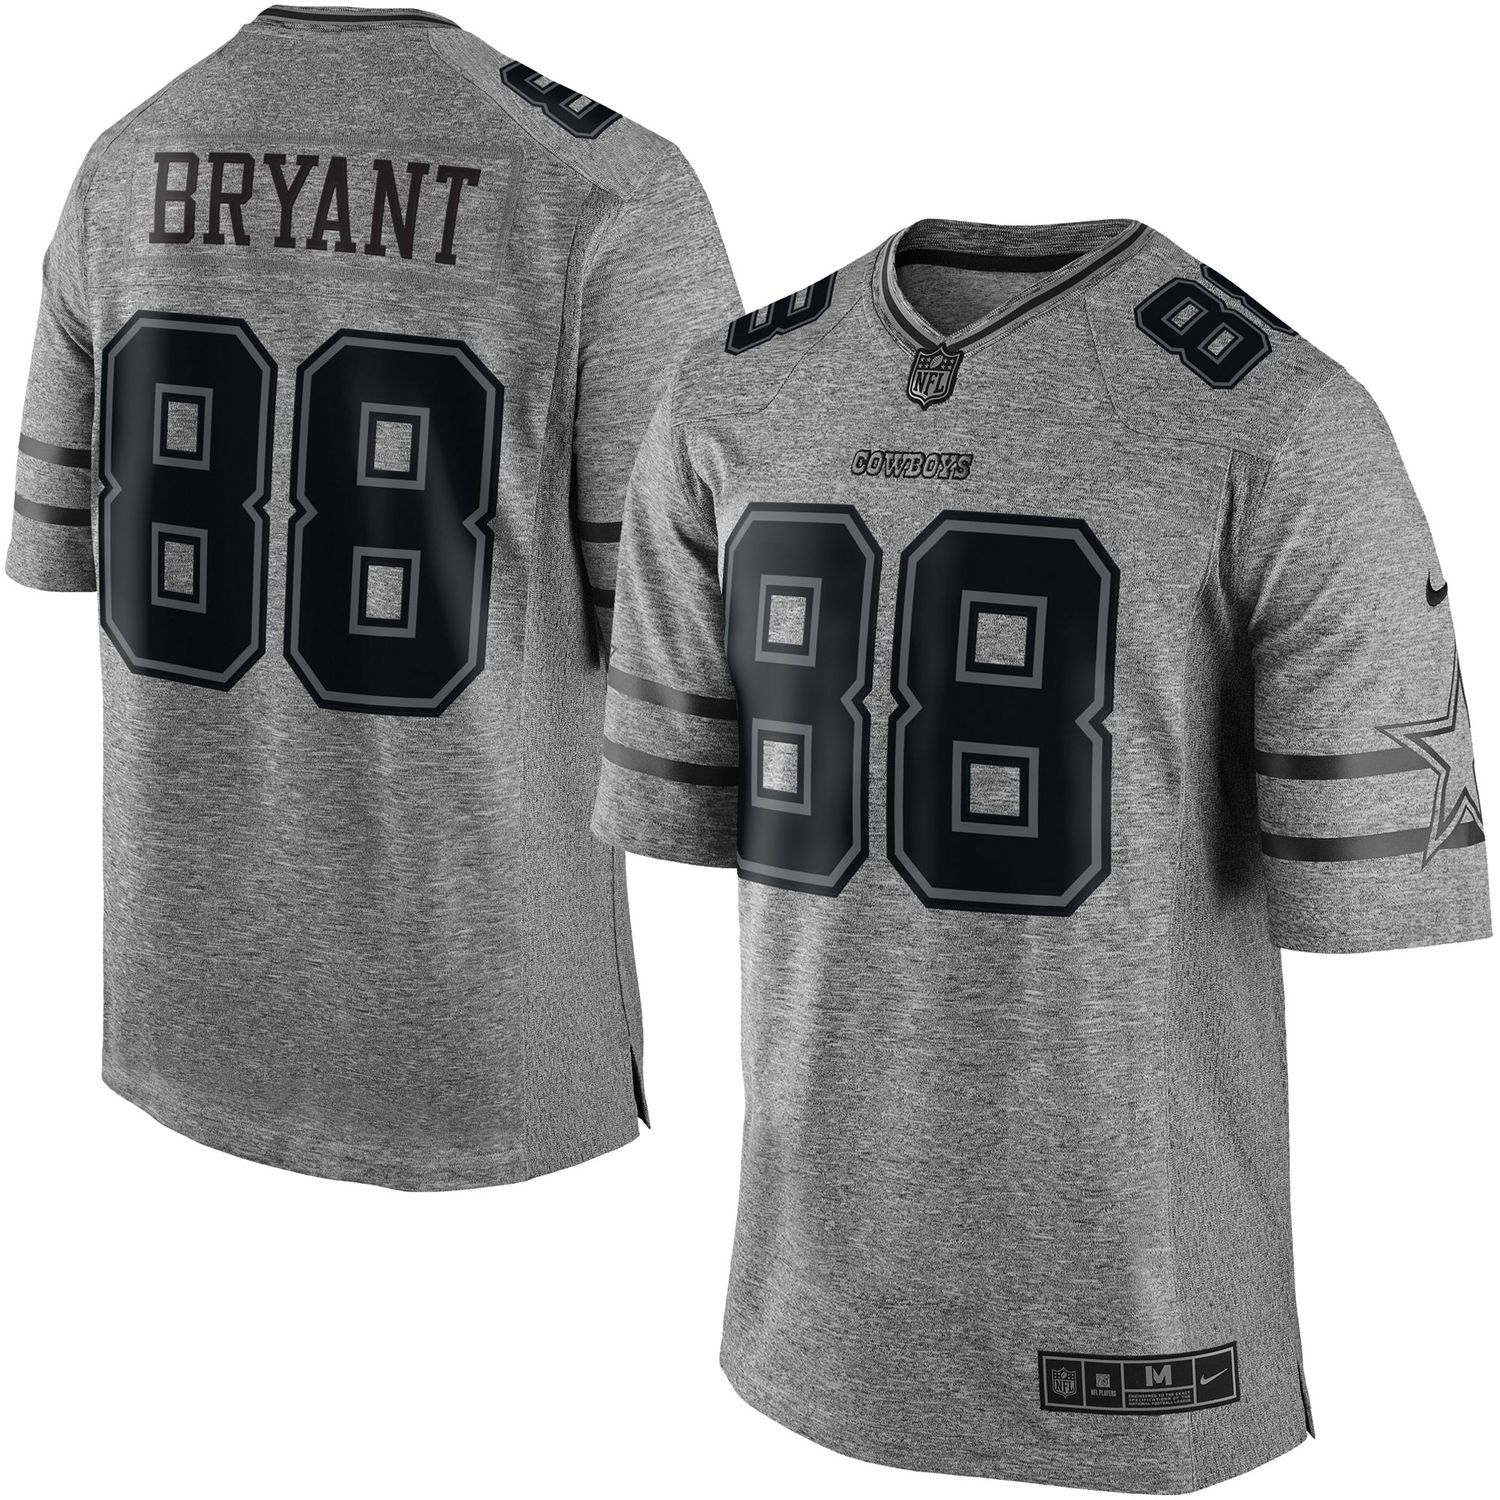 e56d6aa6 Nike Dez Bryant Dallas Cowboys Gray Gridiron Gray Limited Jersey ...